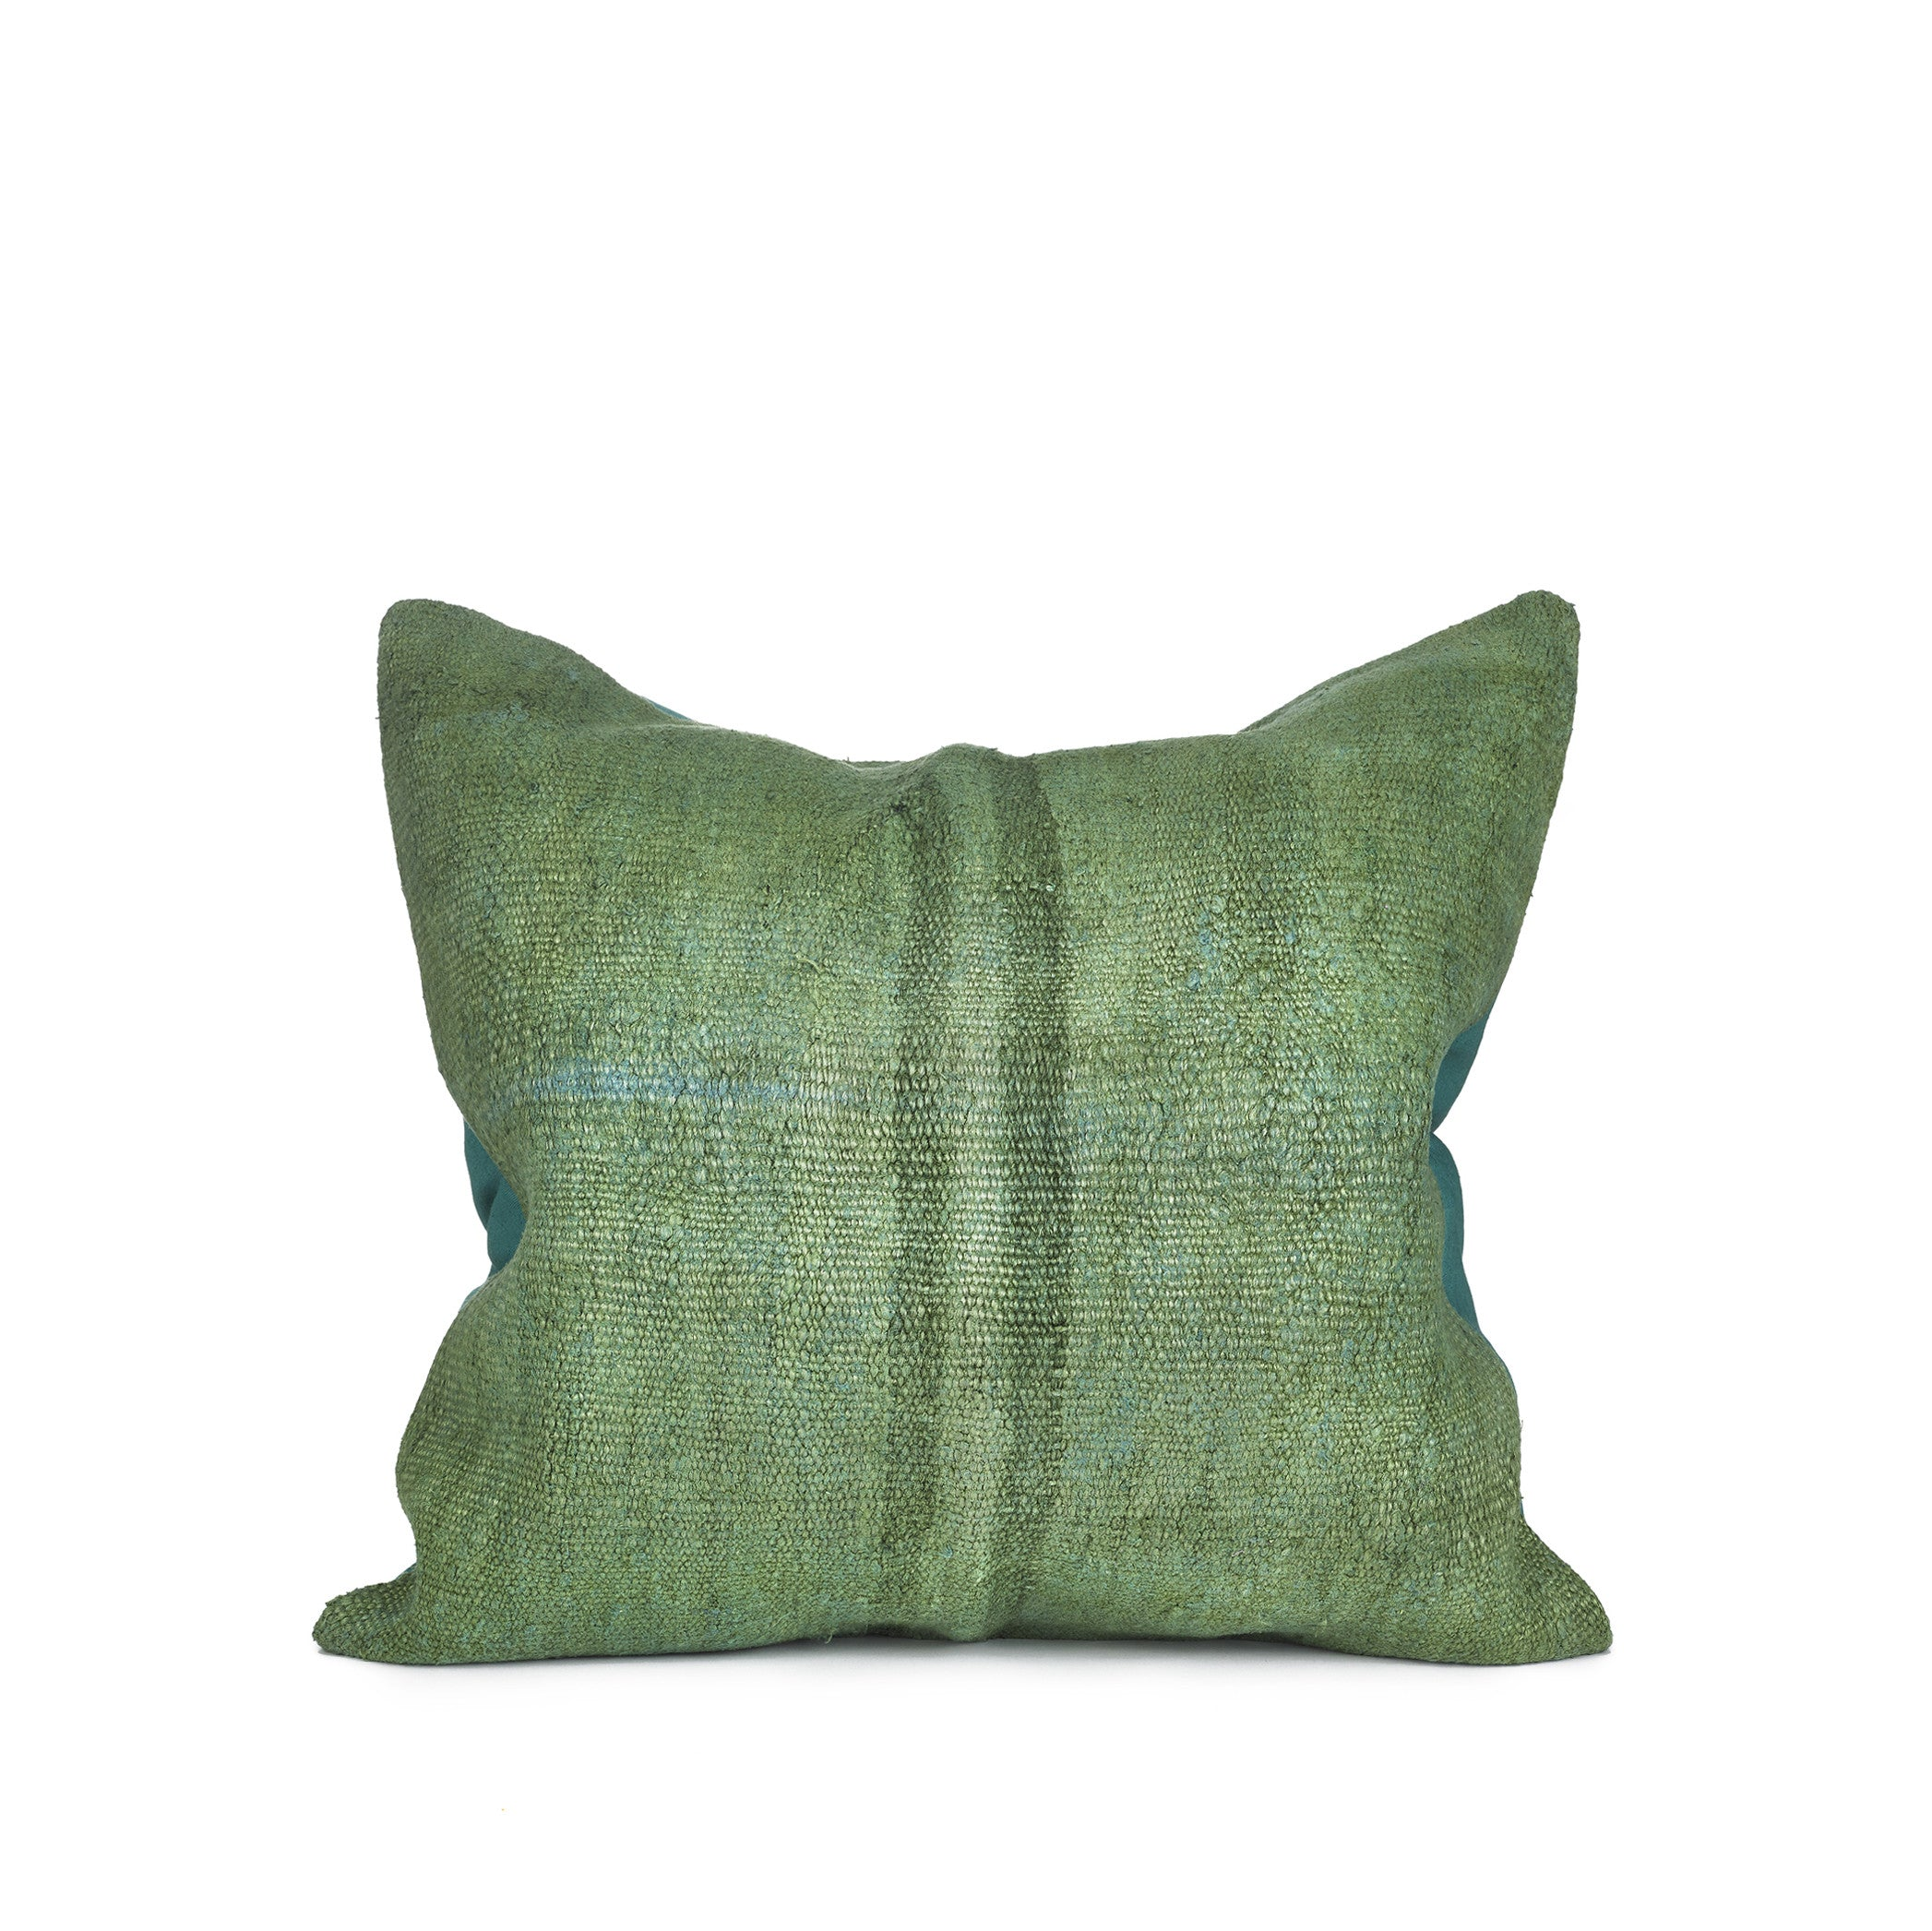 Kilim Cushion in Forest Green